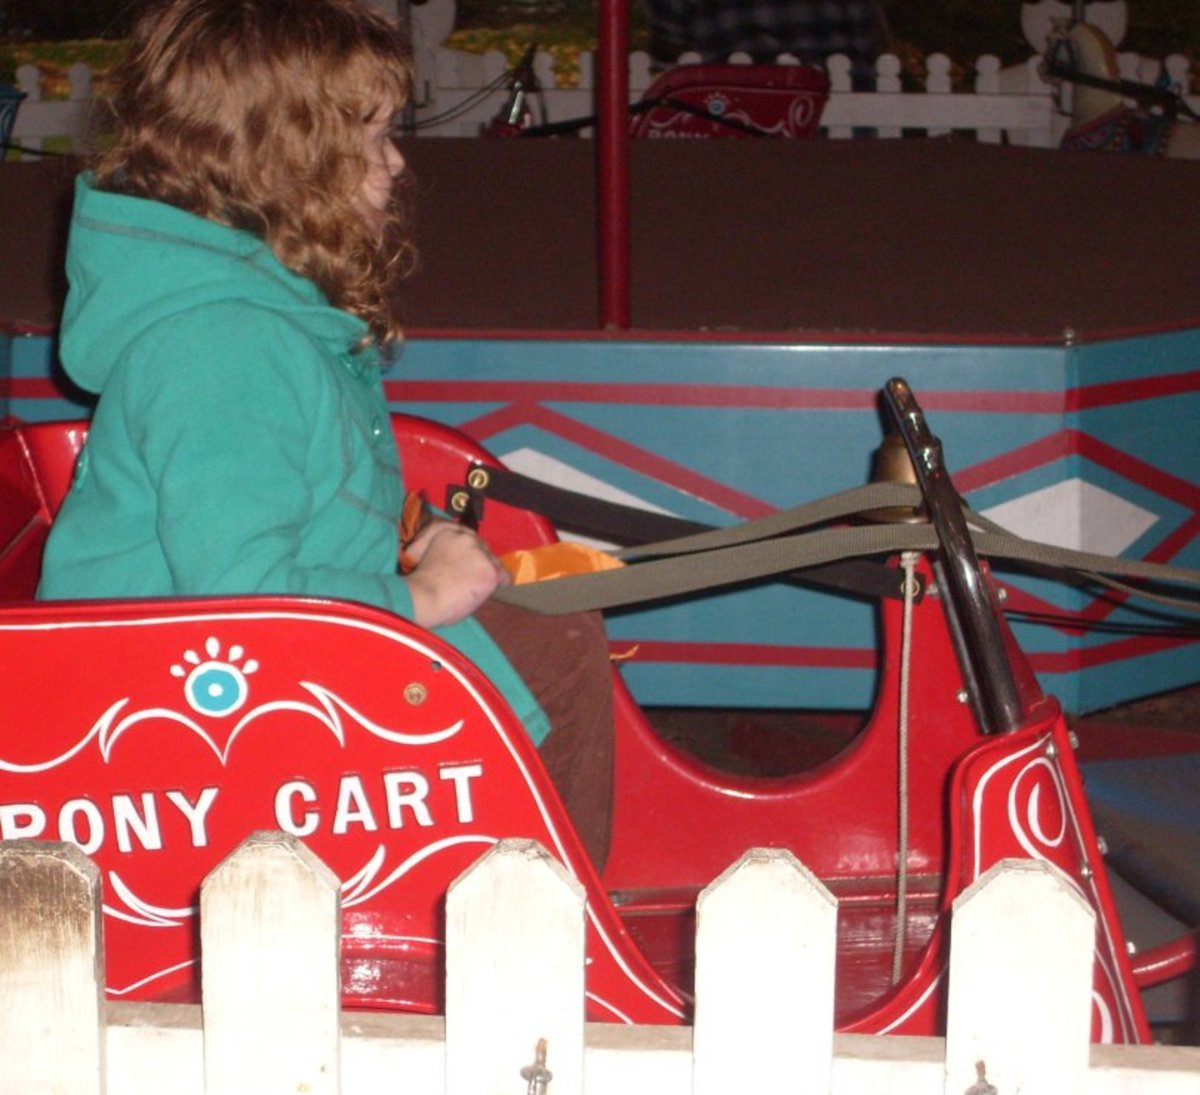 A young girl enjoys the Pony Carts, one of several vintage amusement park rides at Crossroads Village.